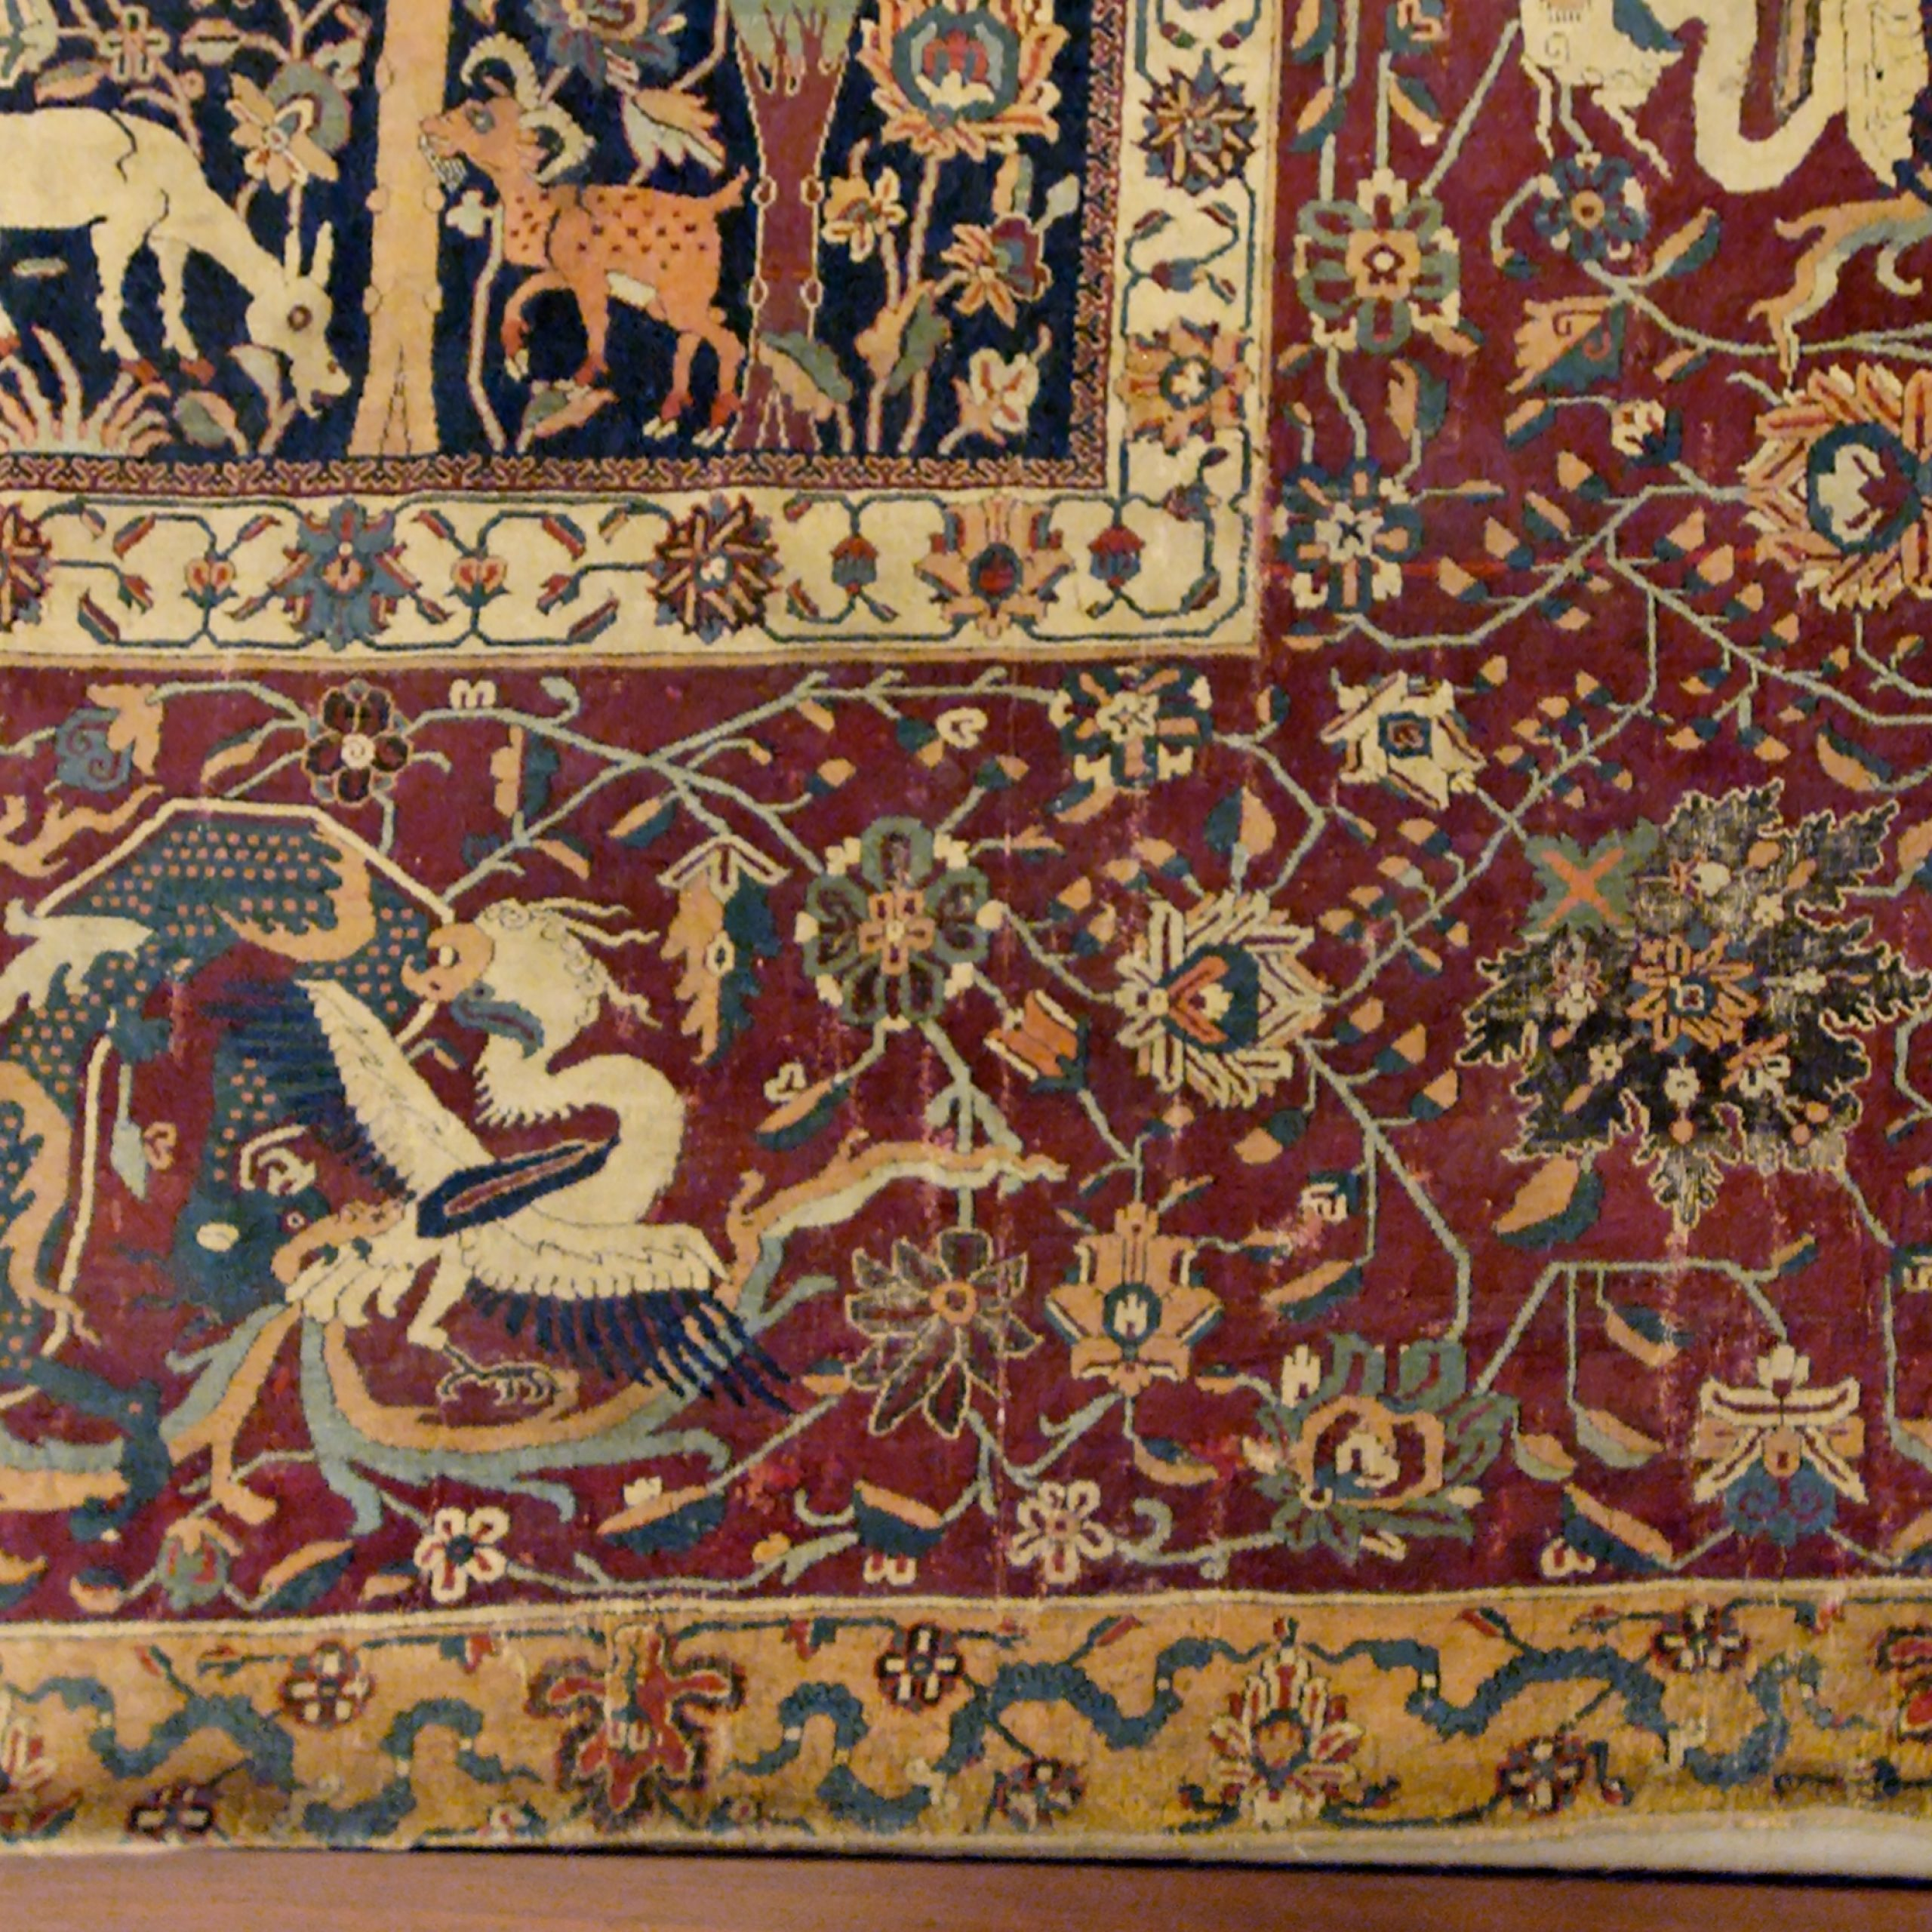 Persian Carpet – Wikipedia Regarding 2017 Blended Fabric European Five English Horses Tapestries (View 12 of 20)